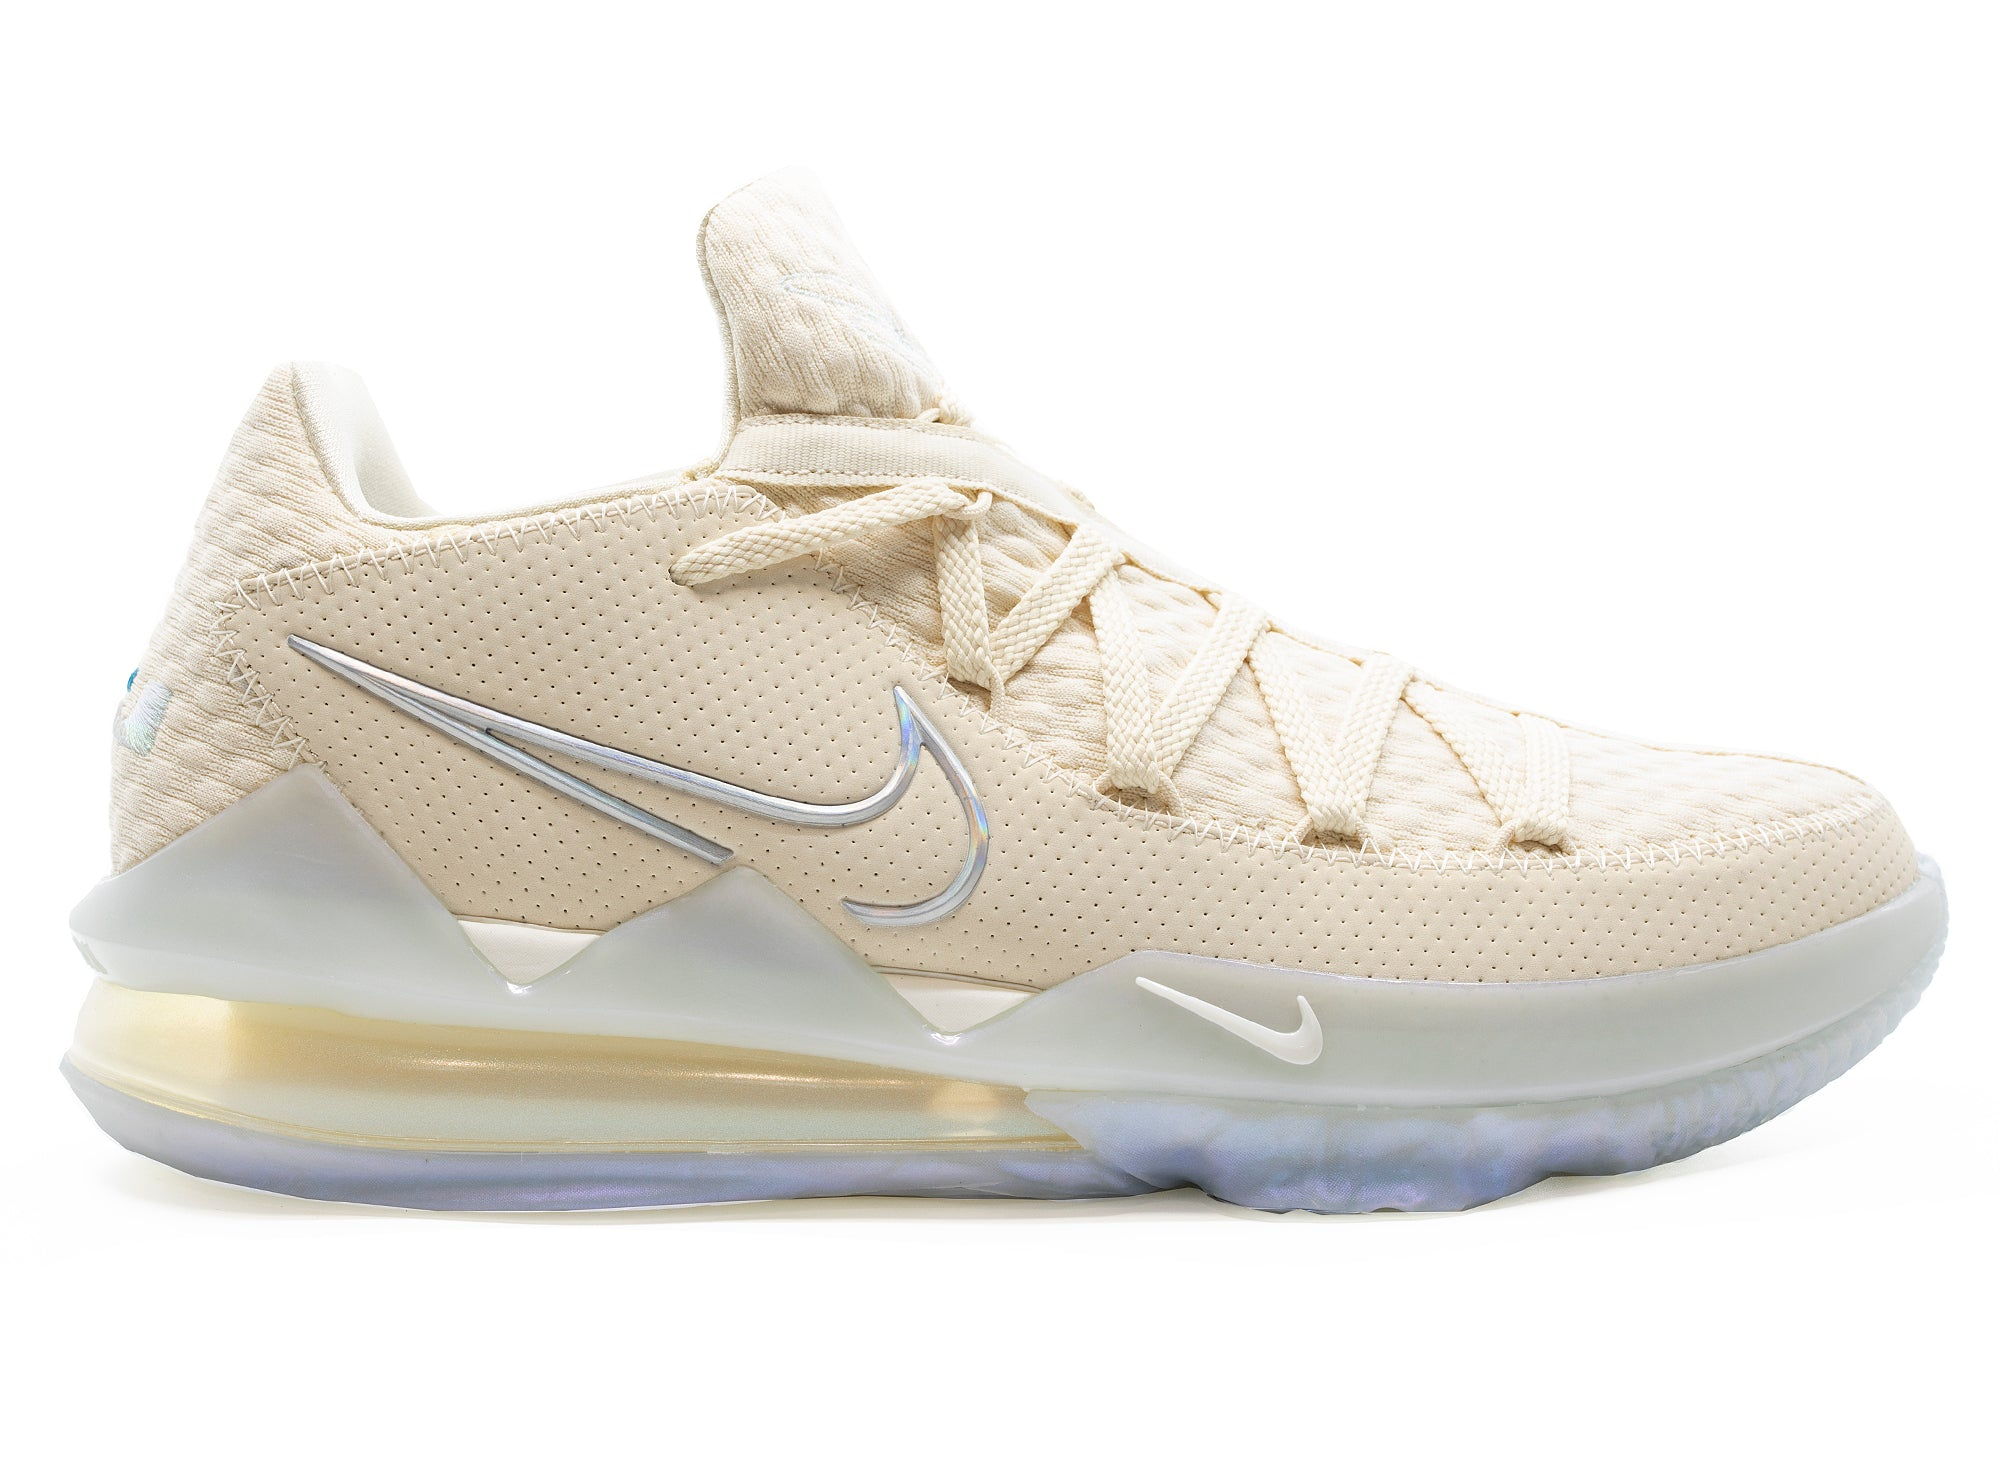 Nike LeBron 17 Low 'Light Cream'